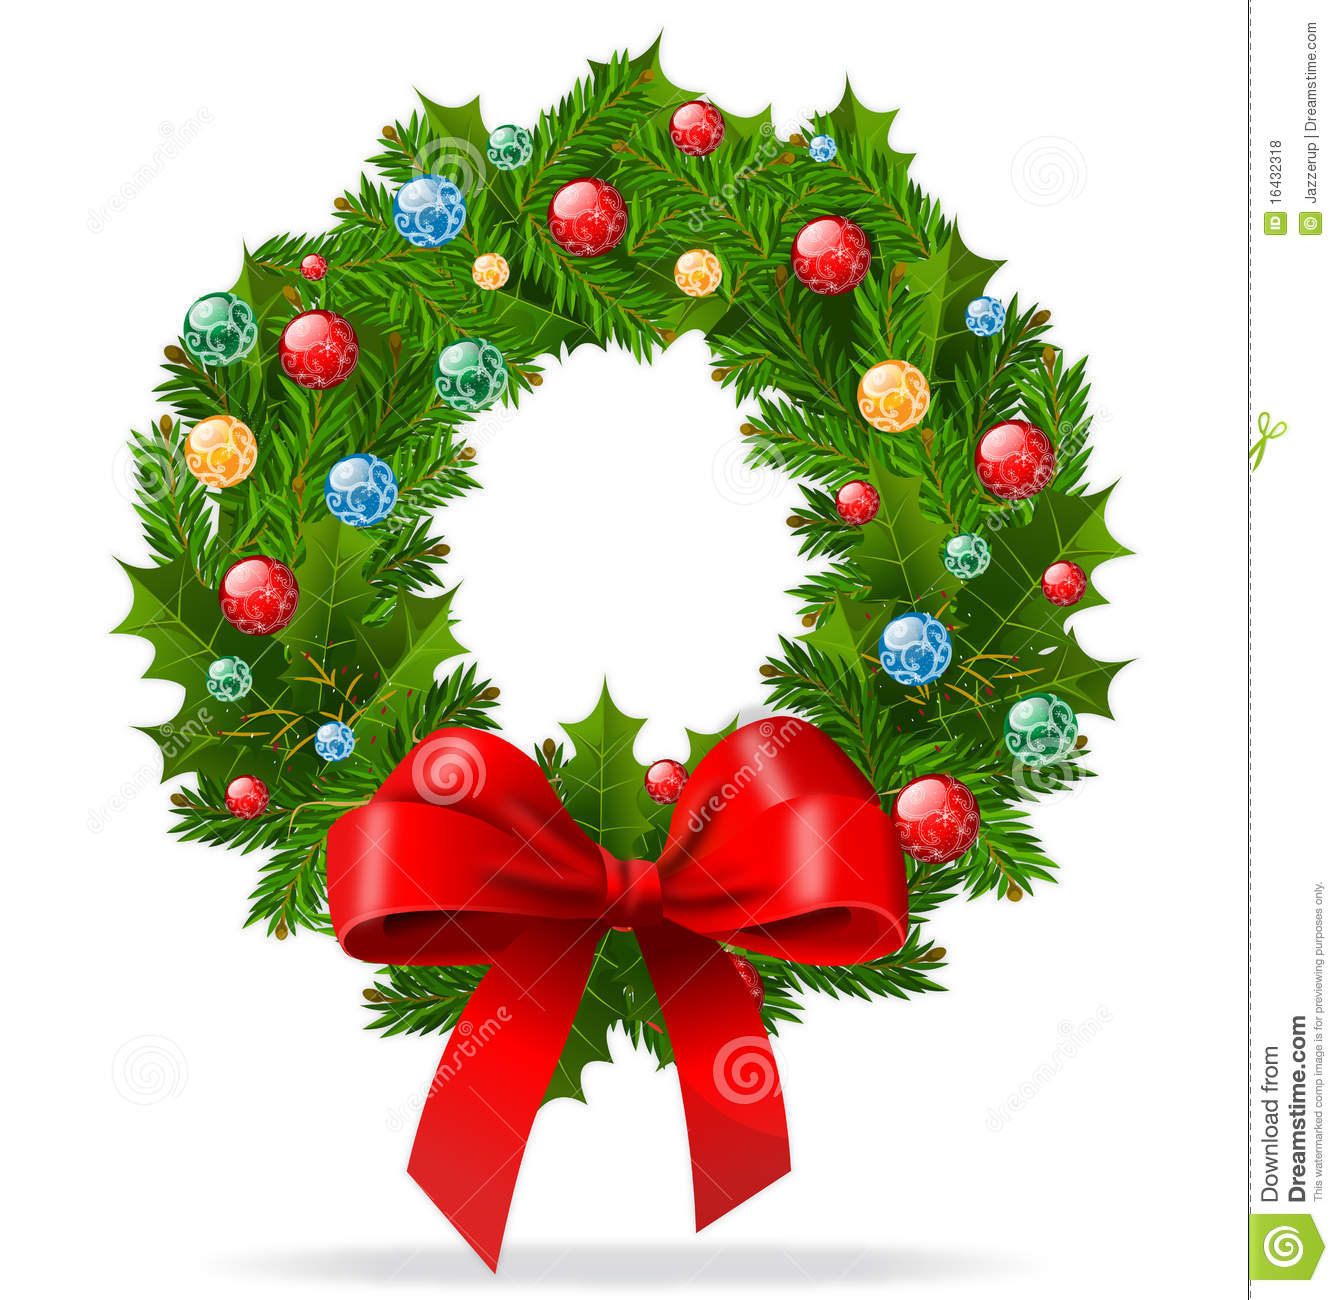 Christmas Wreath Royalty Free Stock Photos - Image: 16432318